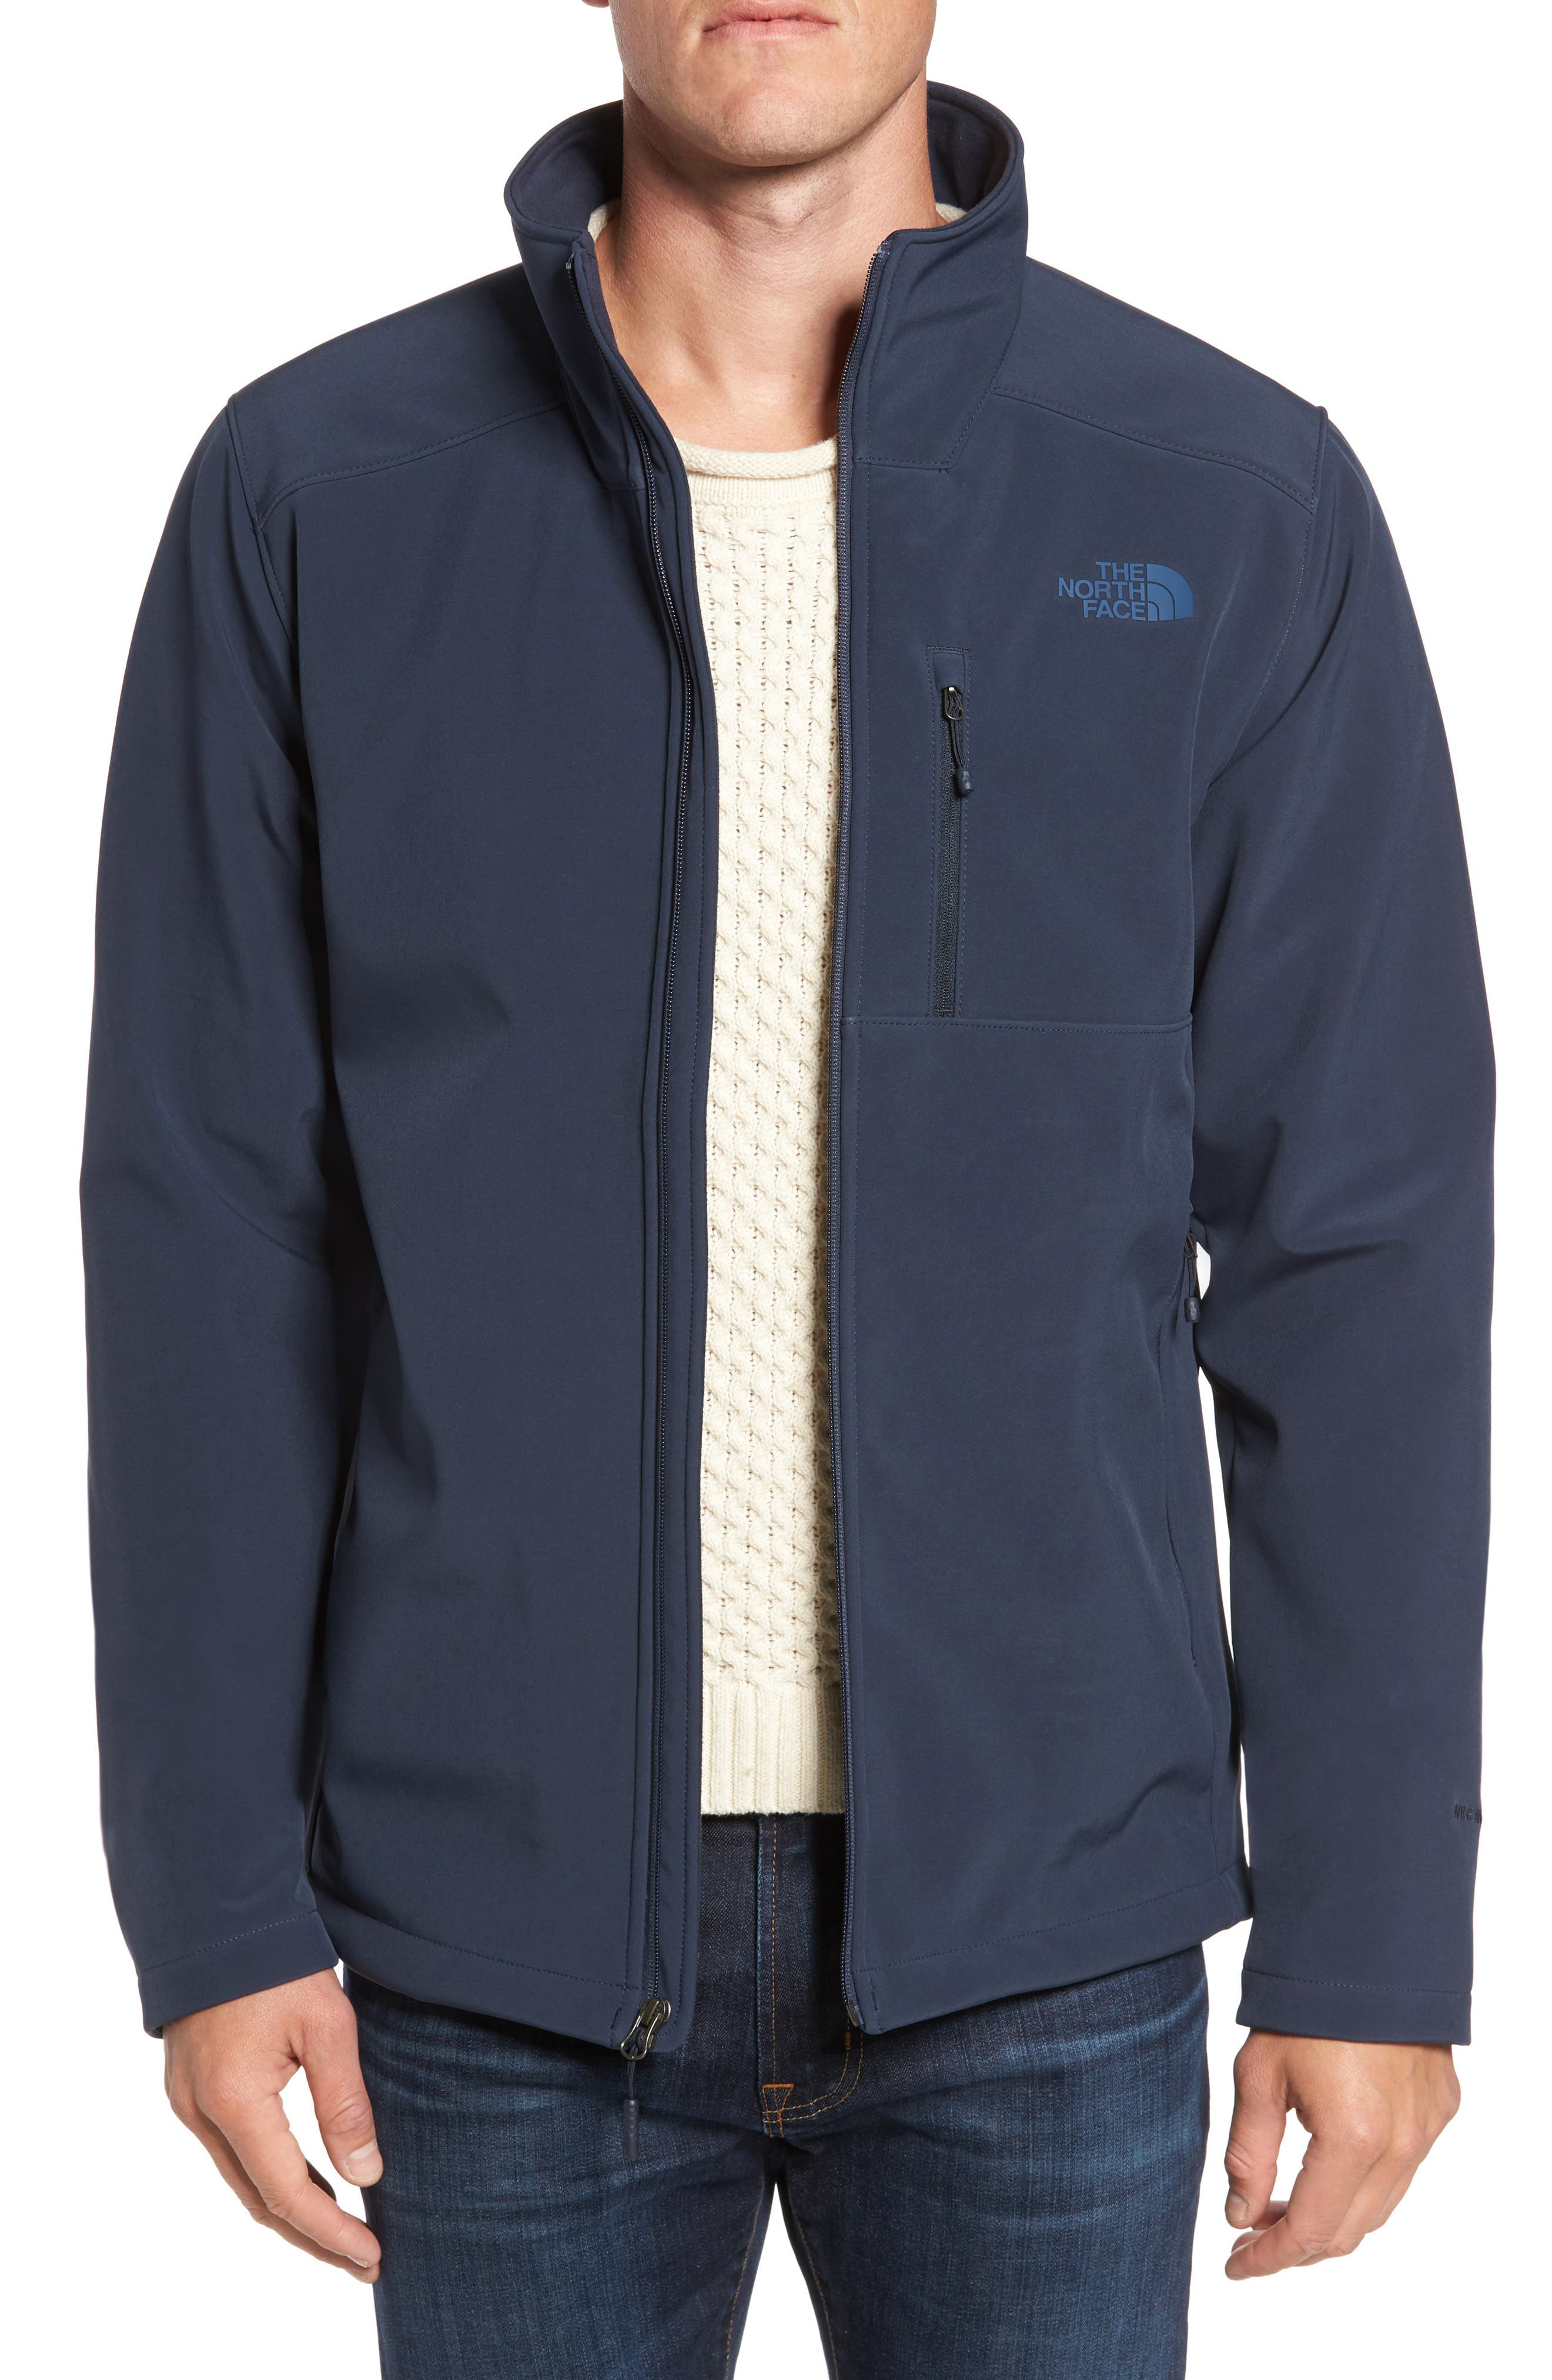 Main Image - The North Face Apex Bionic 2 Water Repellent Jacket (Tall)